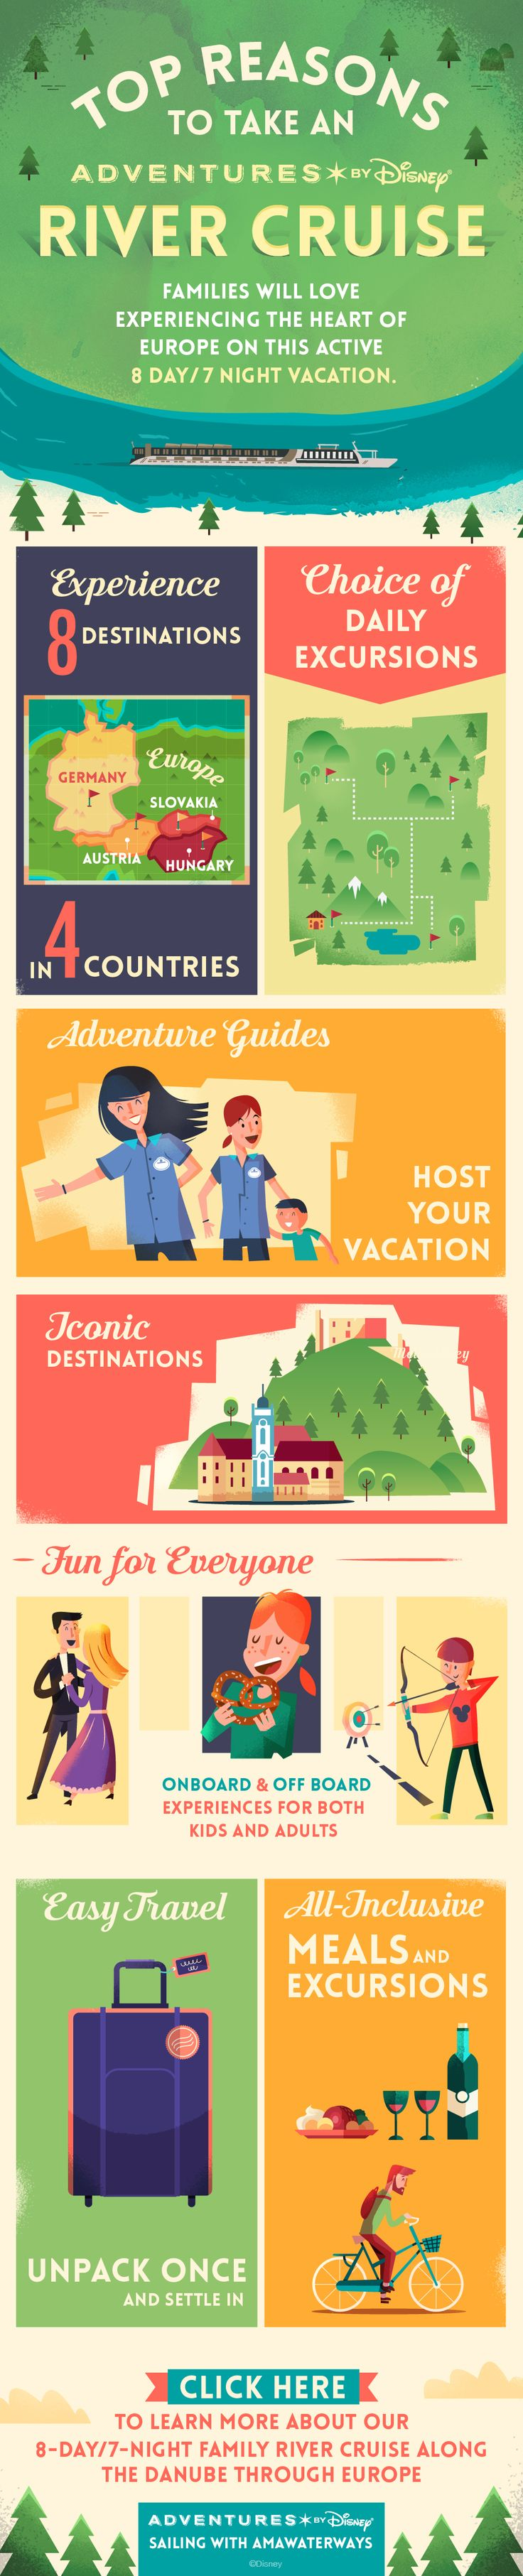 Check out our top reasons to take an Adventures by Disney river cruise with your family during this 8 day / 7 night vacation! Explore eight destinations in four countries on an all-inclusive adventure along the Danube river through Europe!